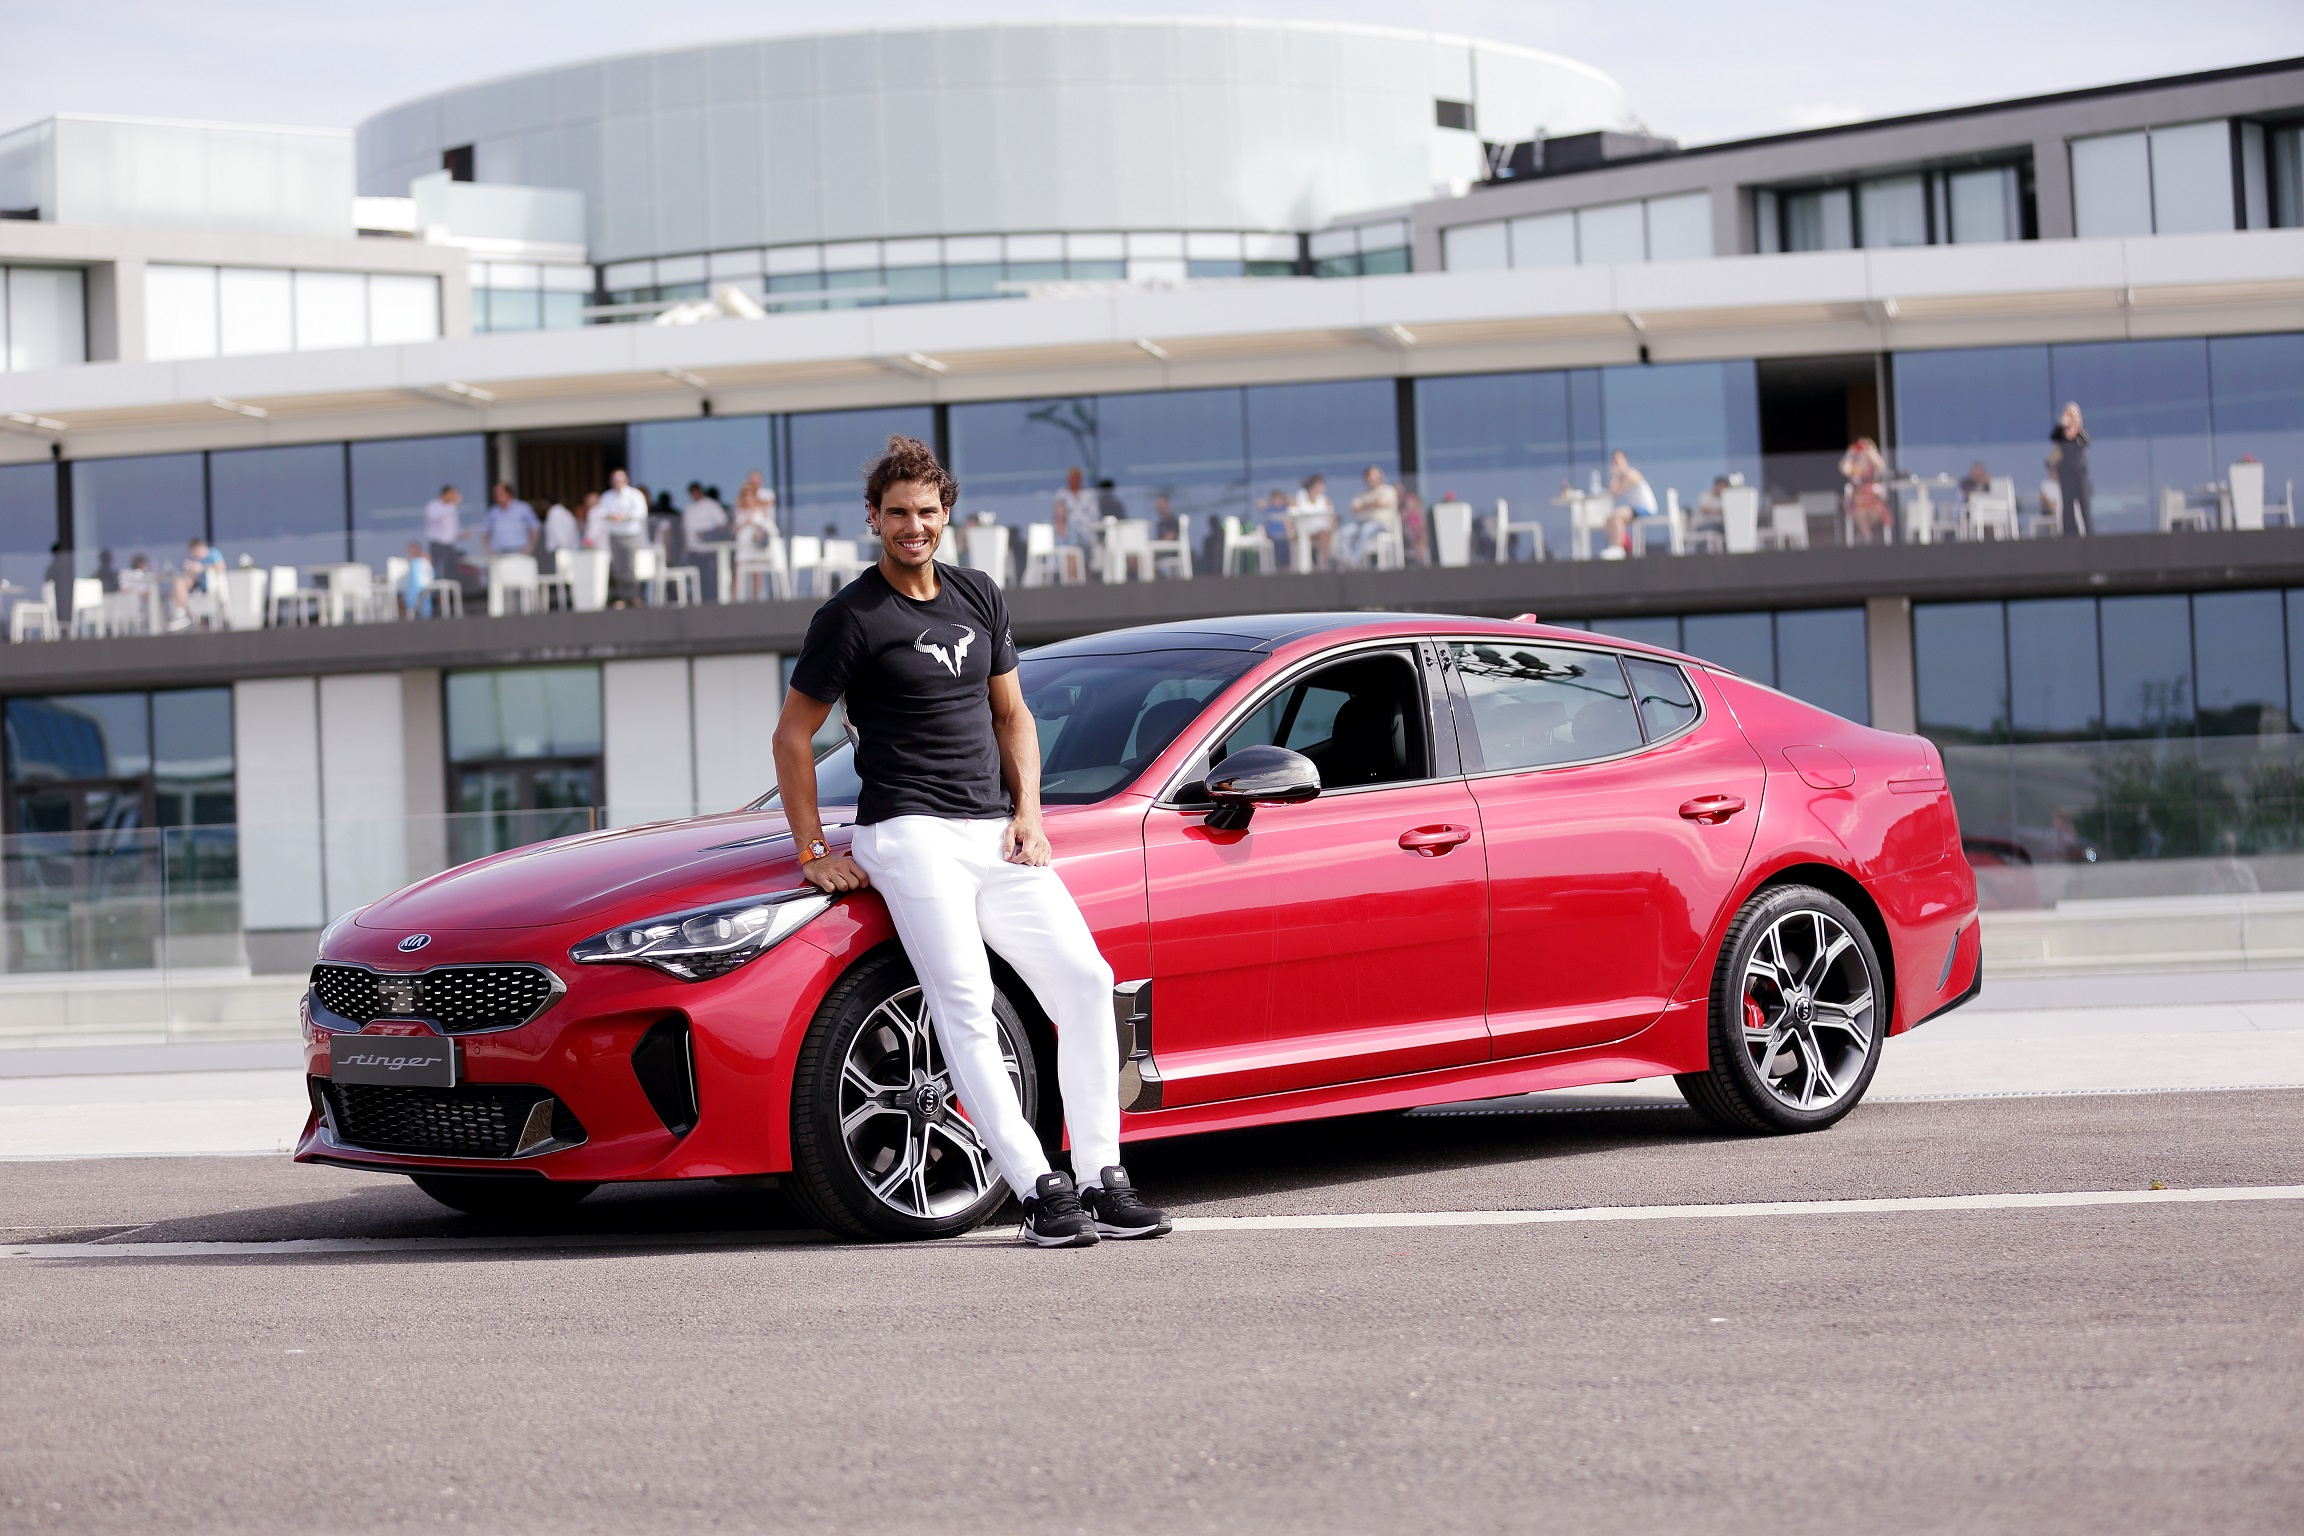 new cars car competition germans life the stinger live its for is has long on kia saloon tough from turbo saab dead sports